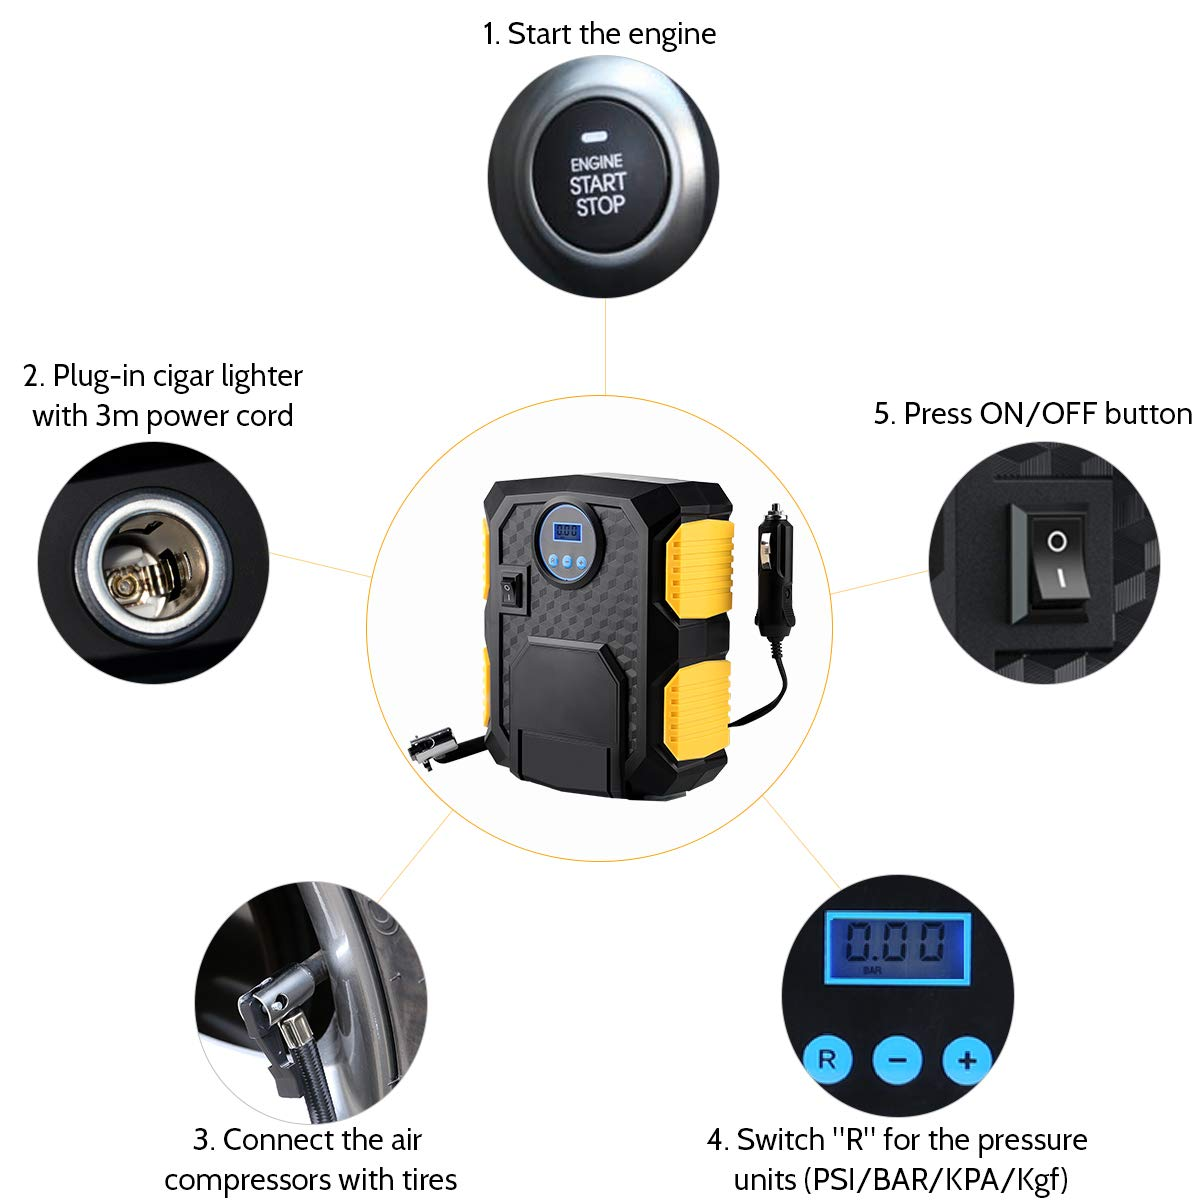 RV SUV ANFAHR Car Tyre Inflator Bicycle and Other Inflatables 12V 150PSI 60L//Min Airflow for Car Portable Dual Cylinder Air Compressor Metal Pump Heavy Duty Pressure Gauge Truck